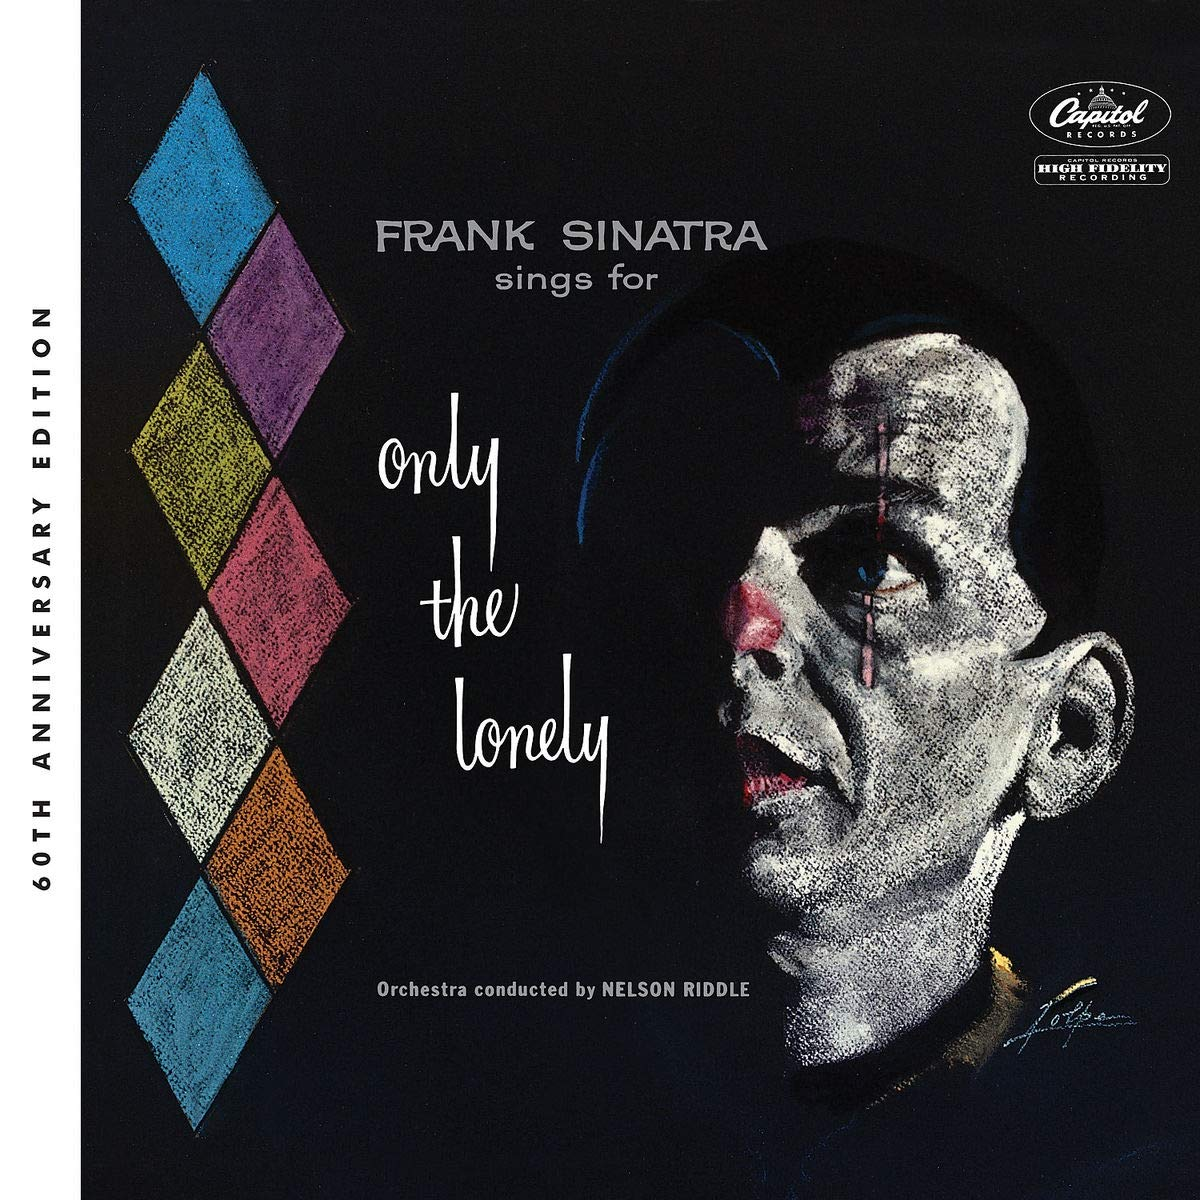 CD : Frank Sinatra - Sings For Only The Lonely (60th Anniversary Stereo Mix) (Deluxe Edition)